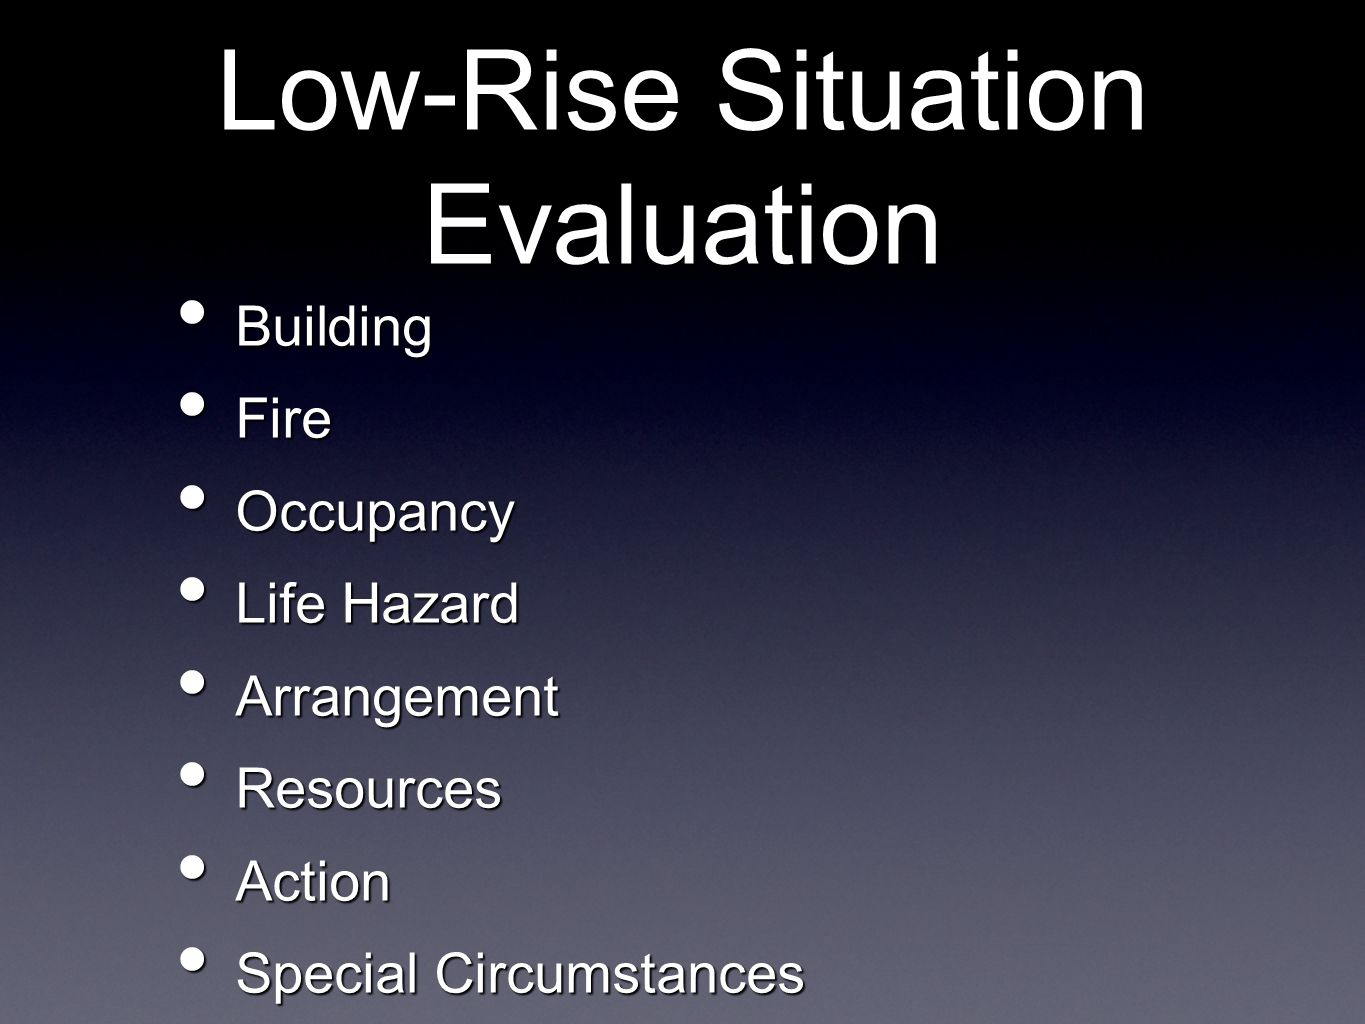 Low-Rise Situation Evaluation